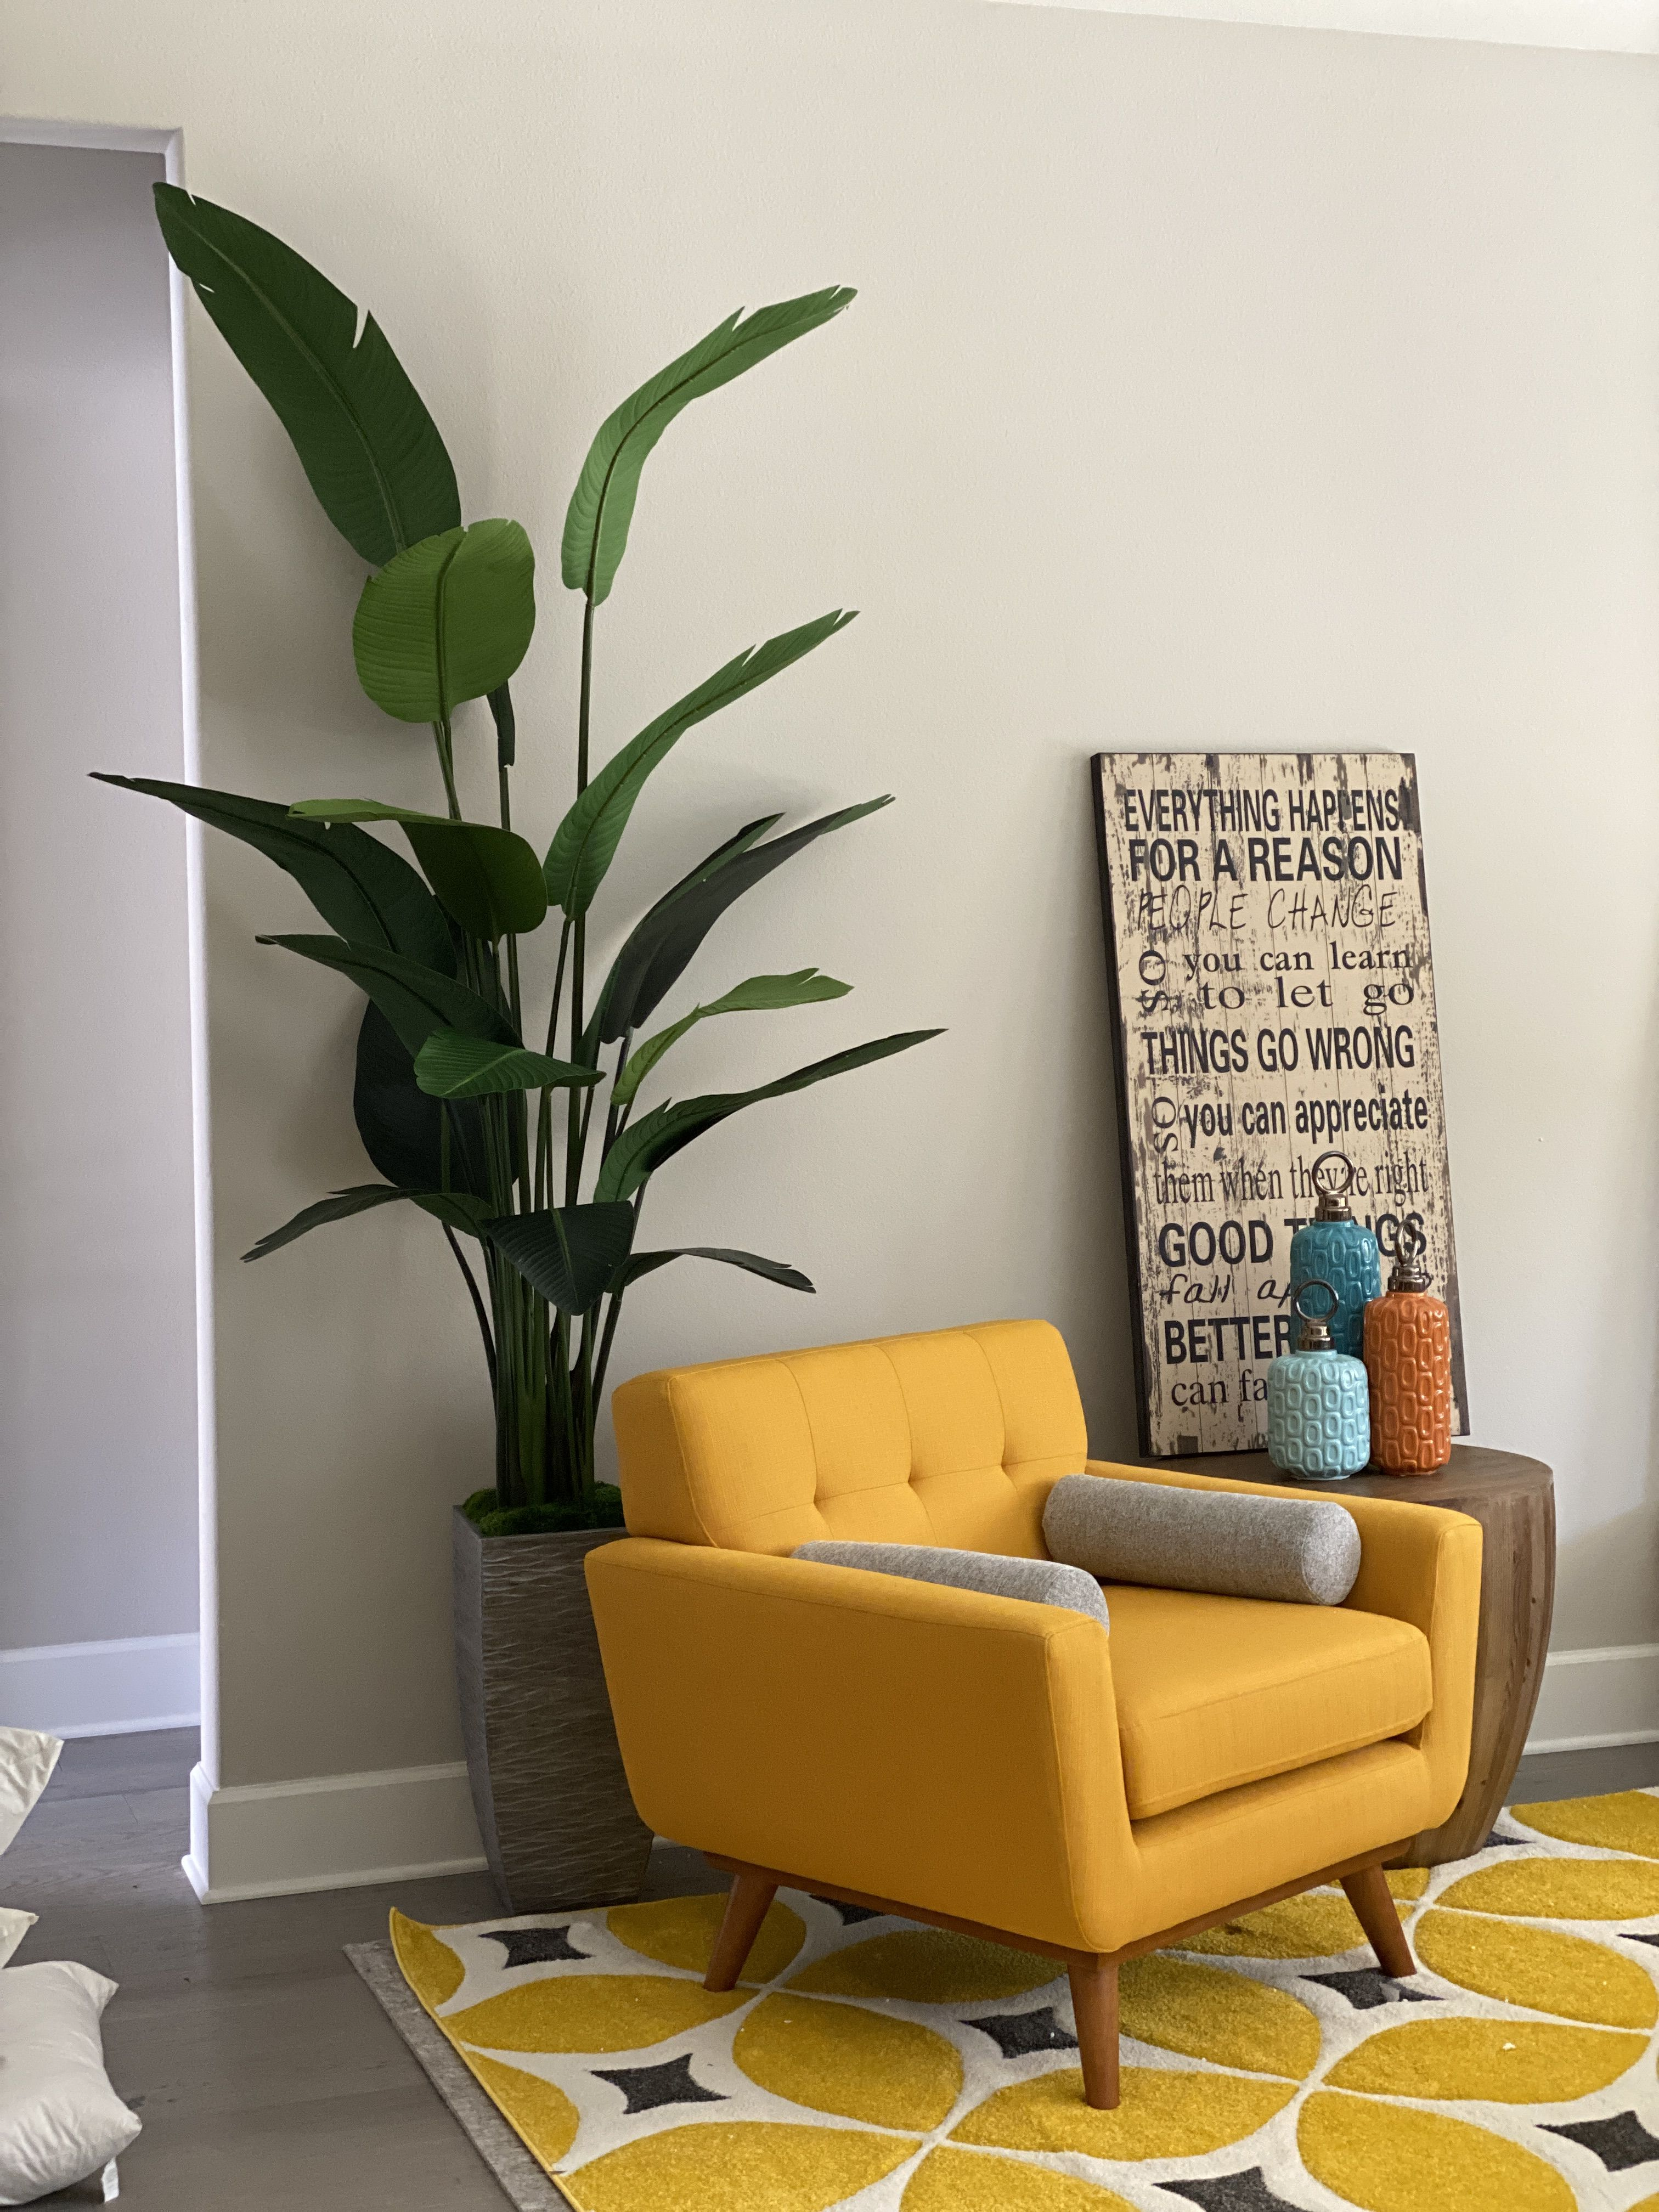 8ft Artificial Bird Of Paradise Palm Tree In 2020 Palm Tree Decor Living Room Living Room Decor Palm Tree Decorations #palm #tree #decor #for #living #room